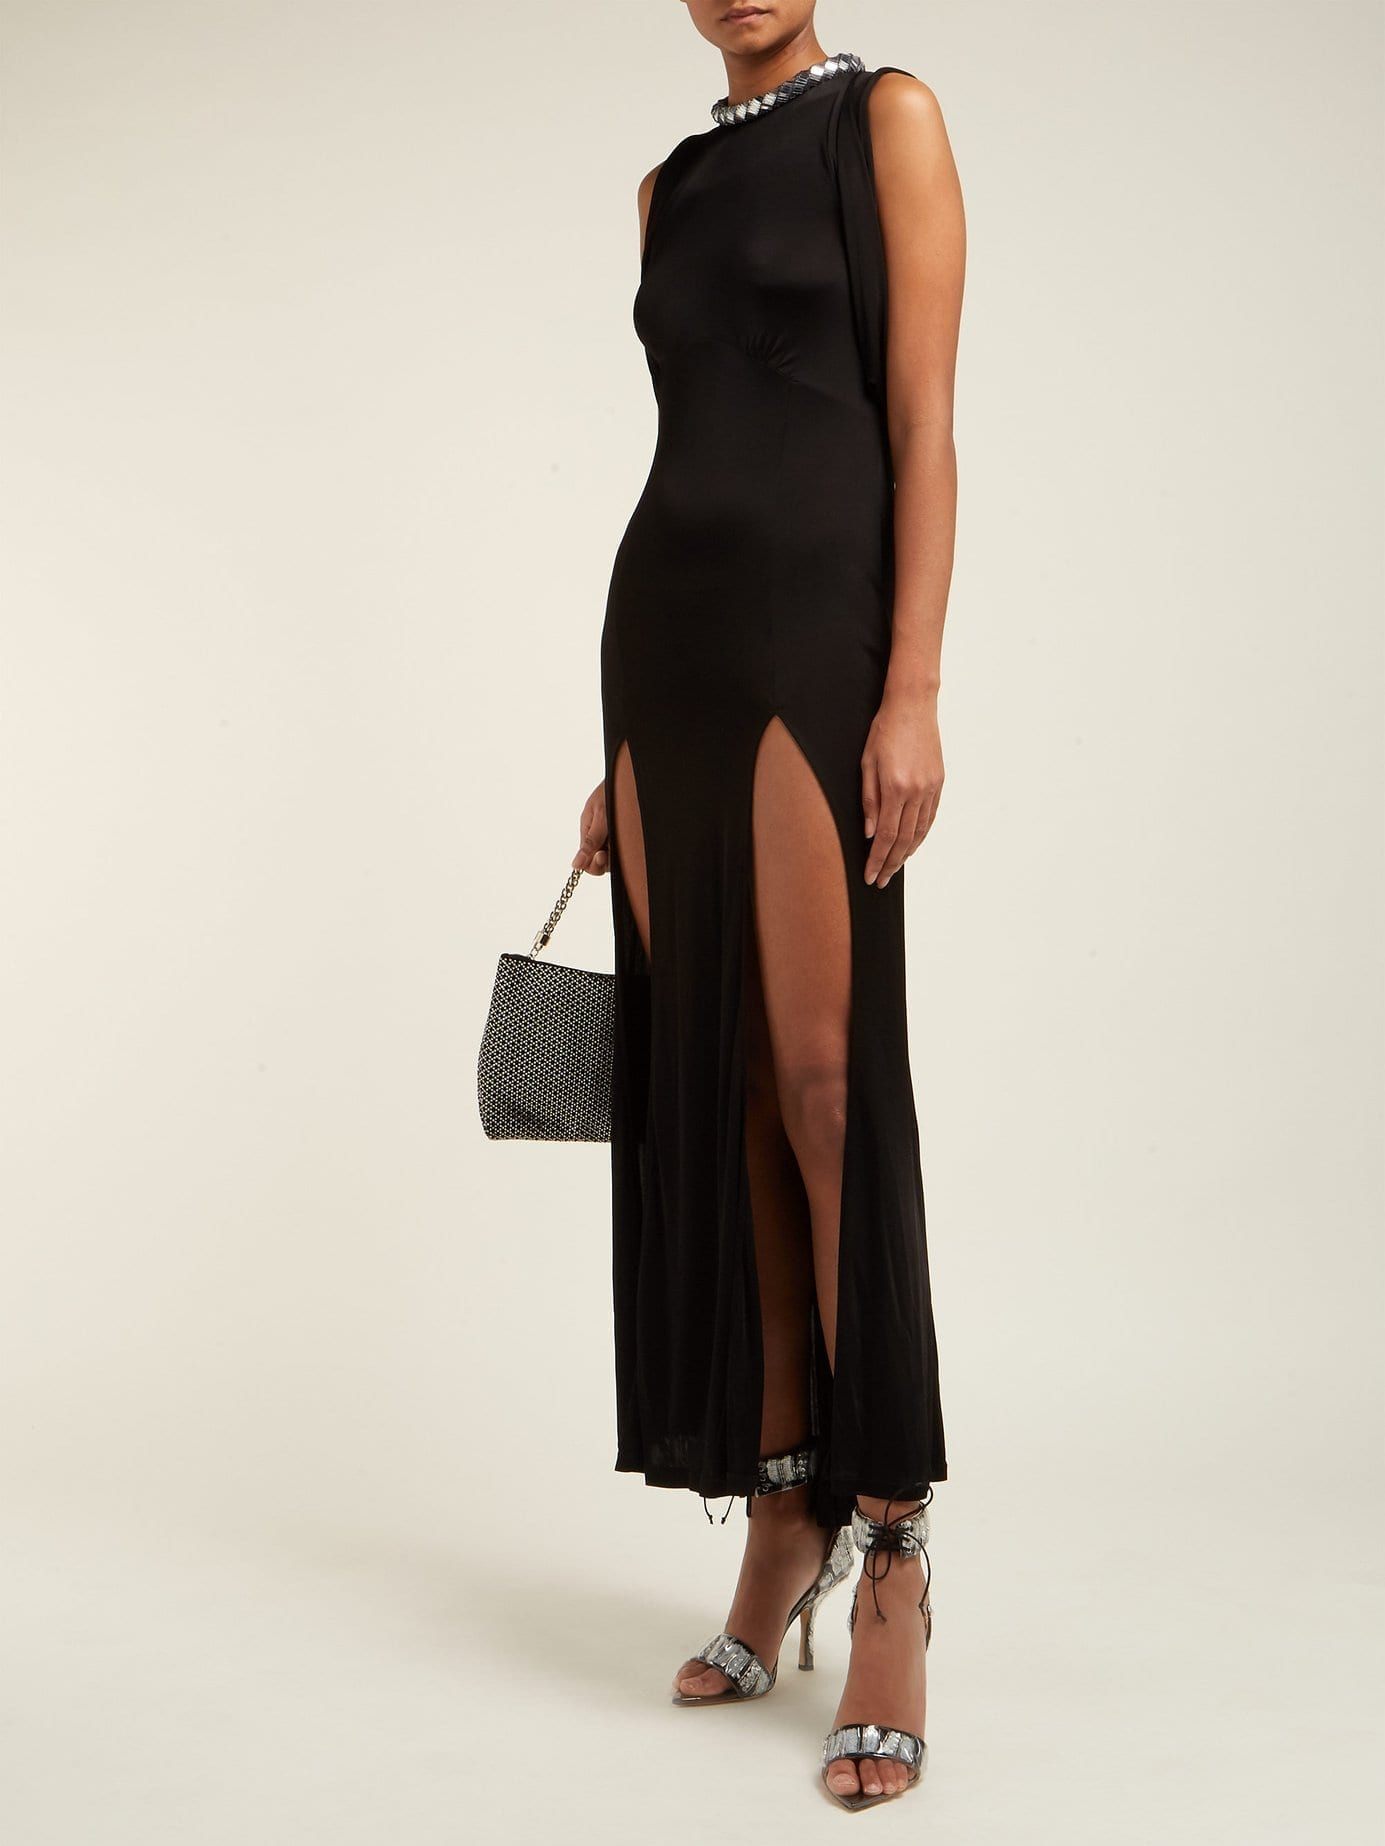 ATTICO Sequinned Slit-front Satin Black Dress